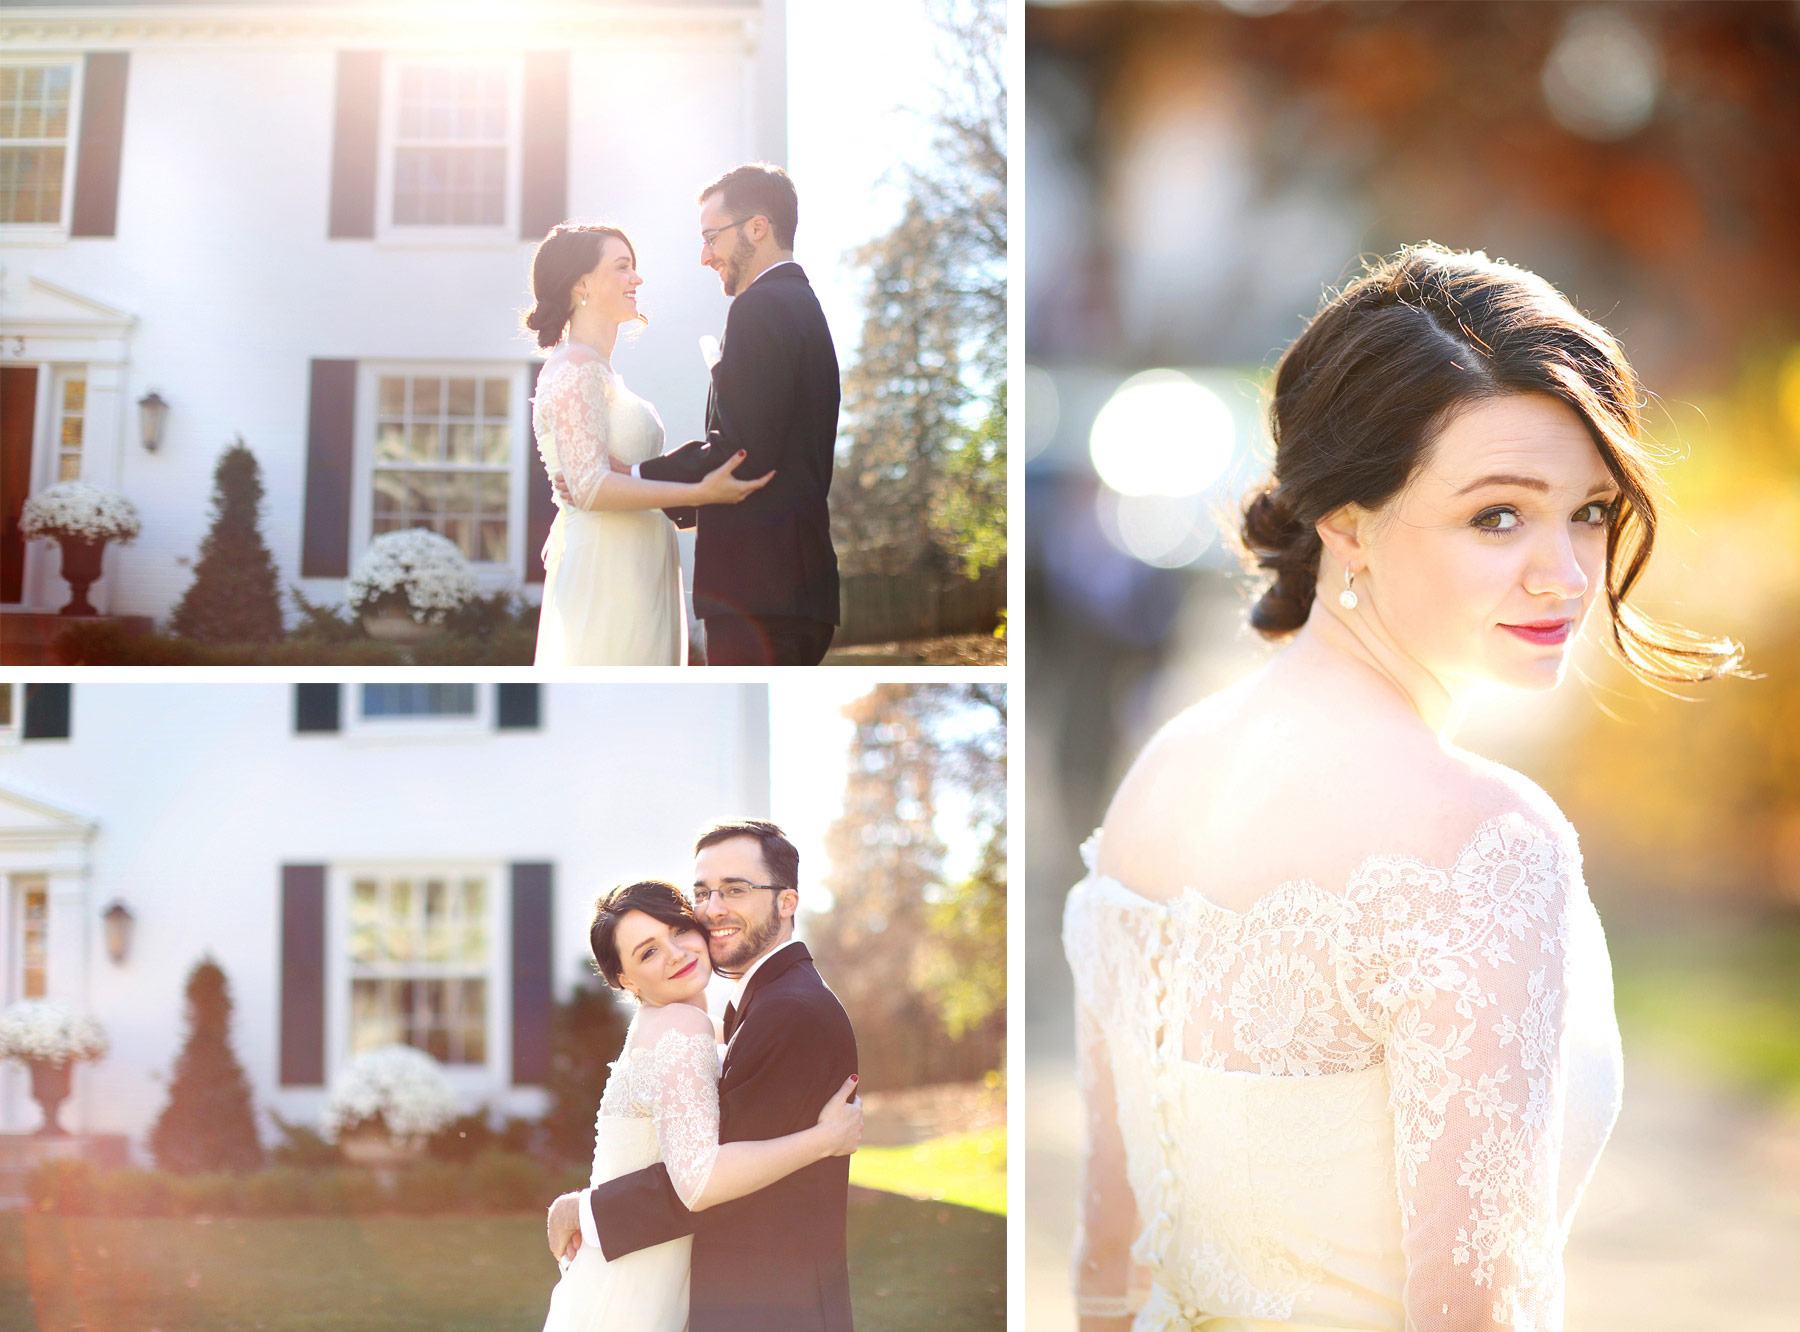 04-Minneapolis-Minnesota-Wedding-Photography-by-Vick-Photography-First-Look-Vintage-Sarah-and-Patrick.jpg